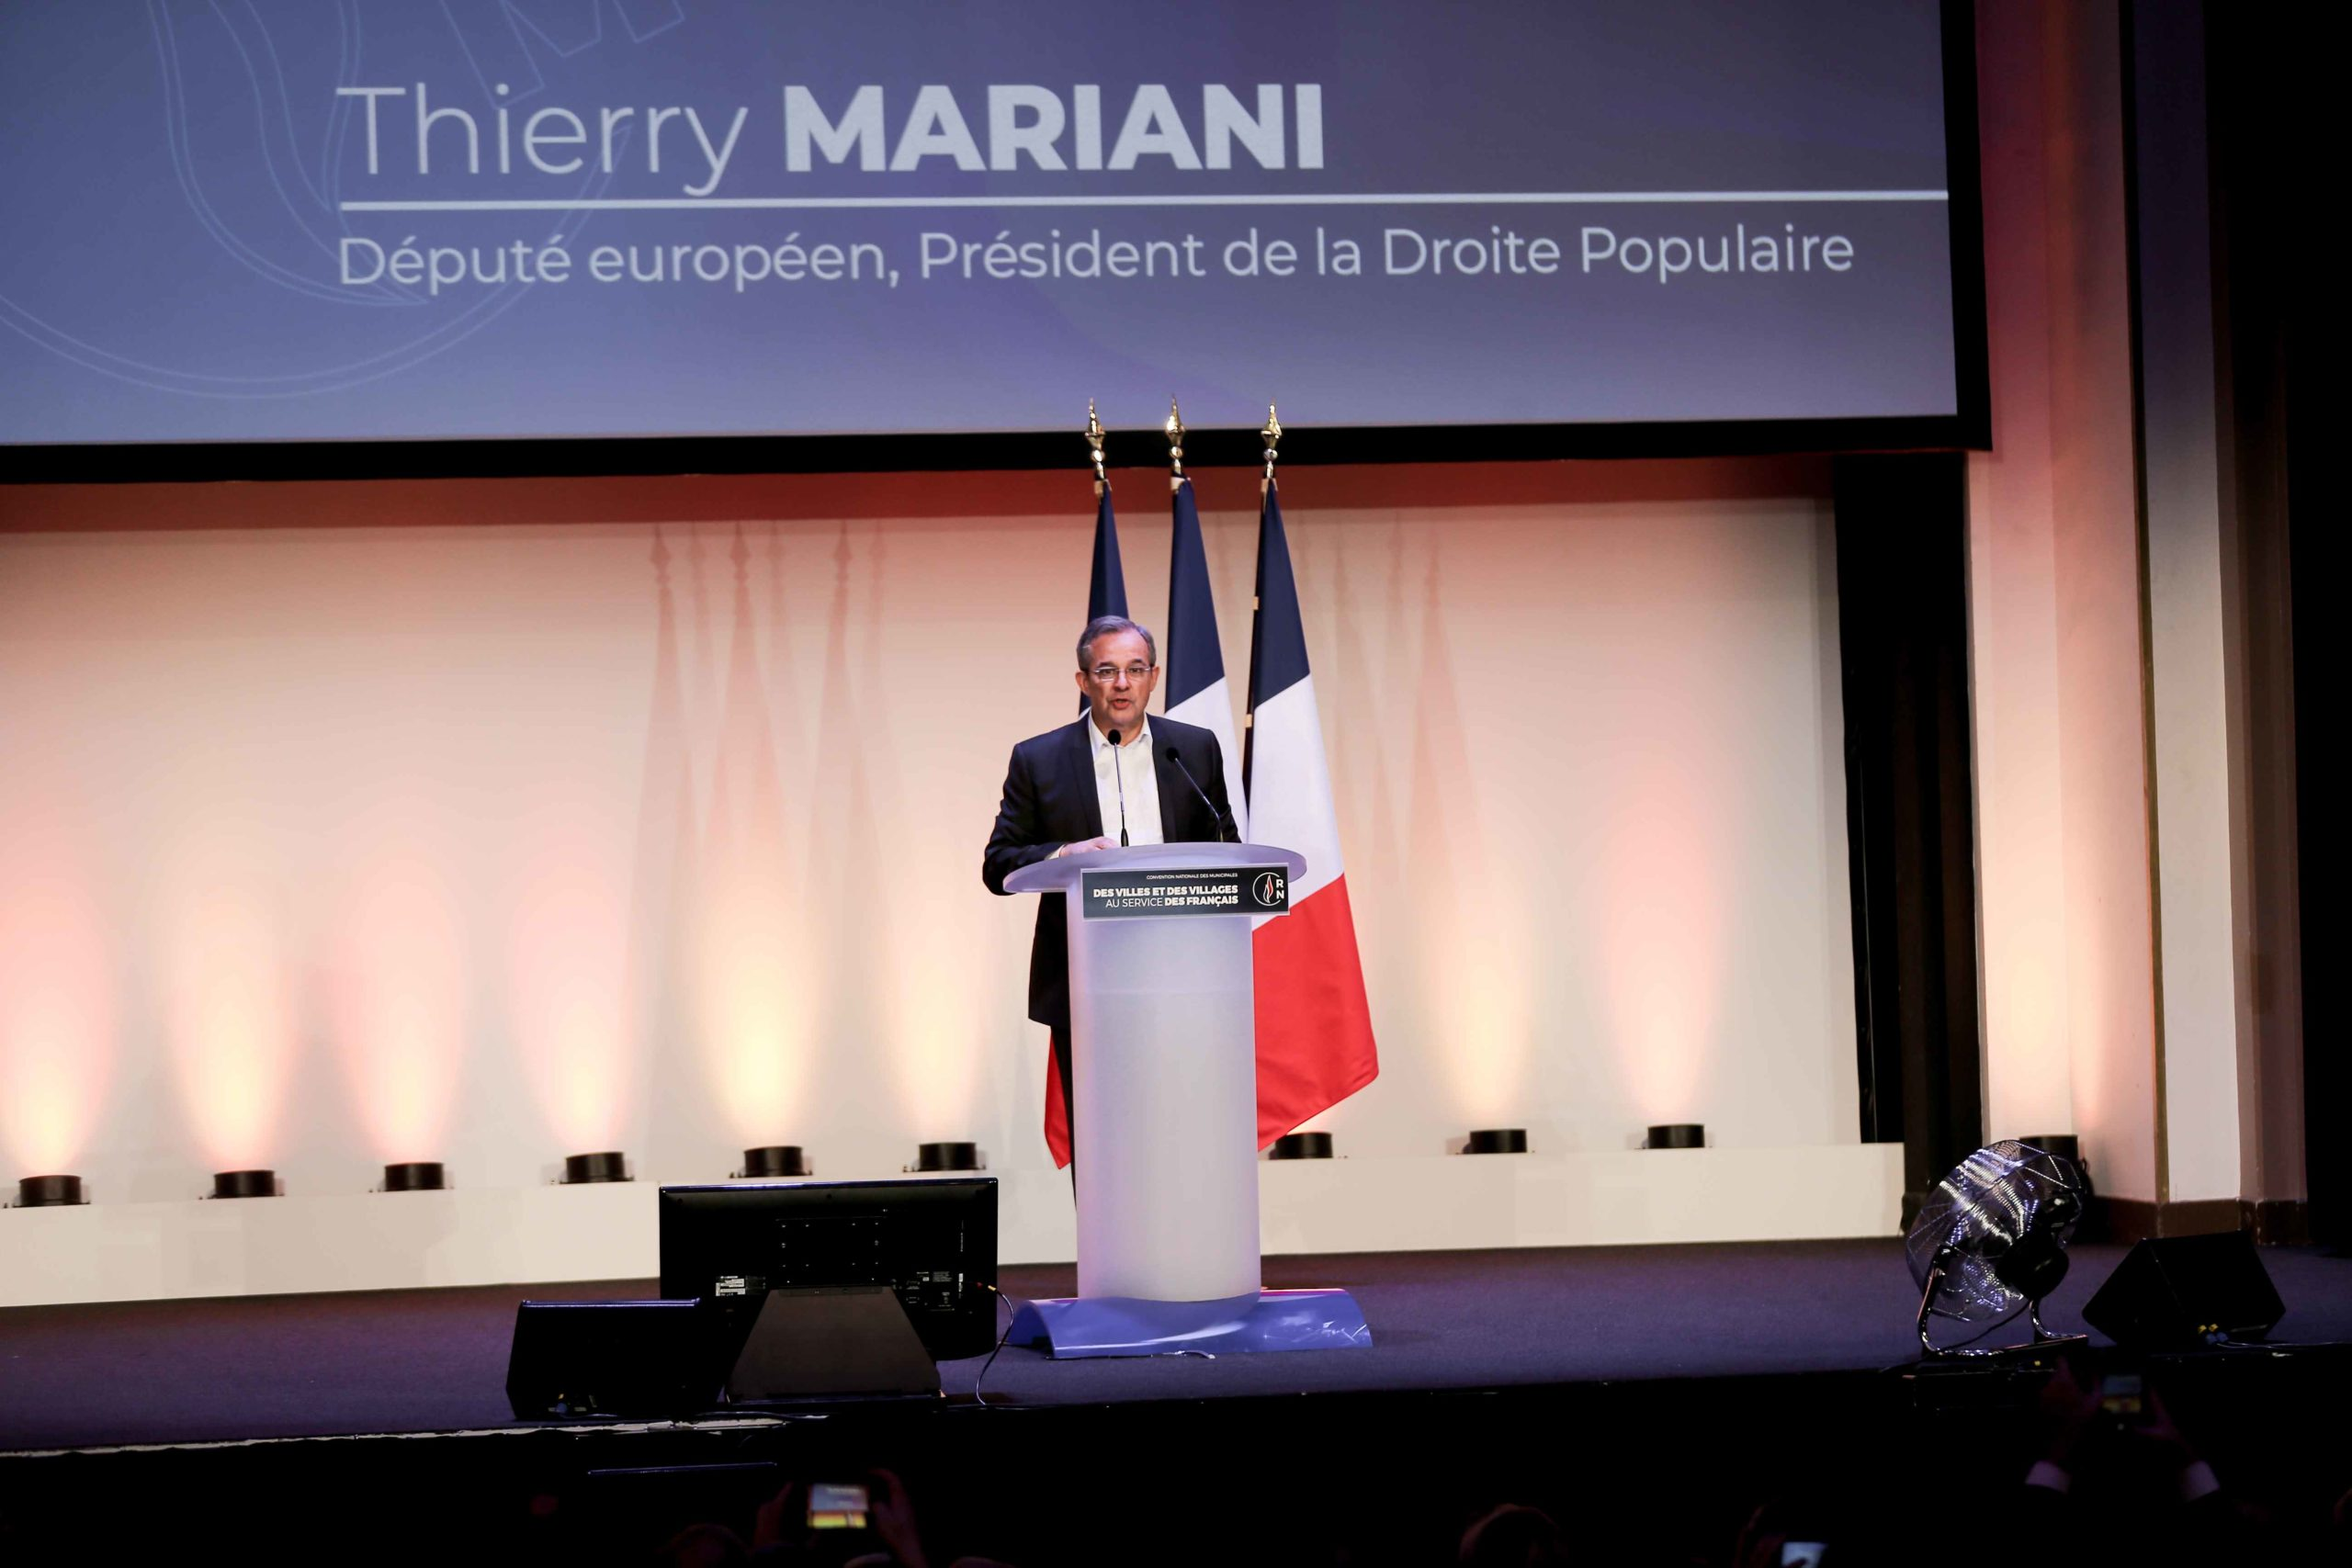 Thierry Mariani, French far-right Rassemblement National (RN) party member and Member of the European Parliament, speaks in Paris, on January 12, 2020, during a meeting to launch the RN campaign candidates for the next municipal elections.  The 2020 French